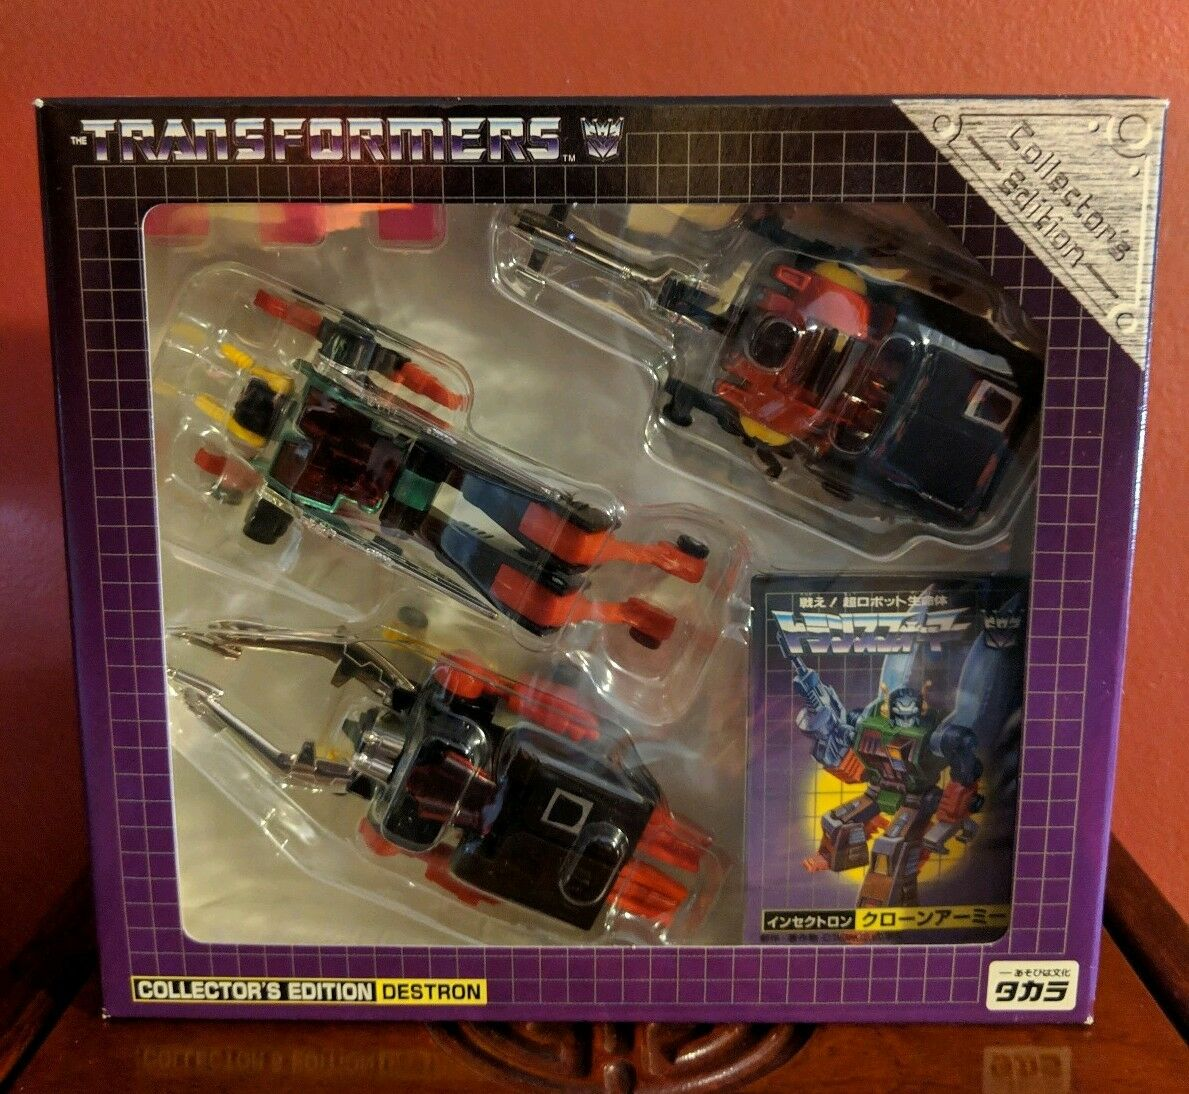 Takara Transformers e-Hobby G1 Diaclone Insecticons Collector's Edition